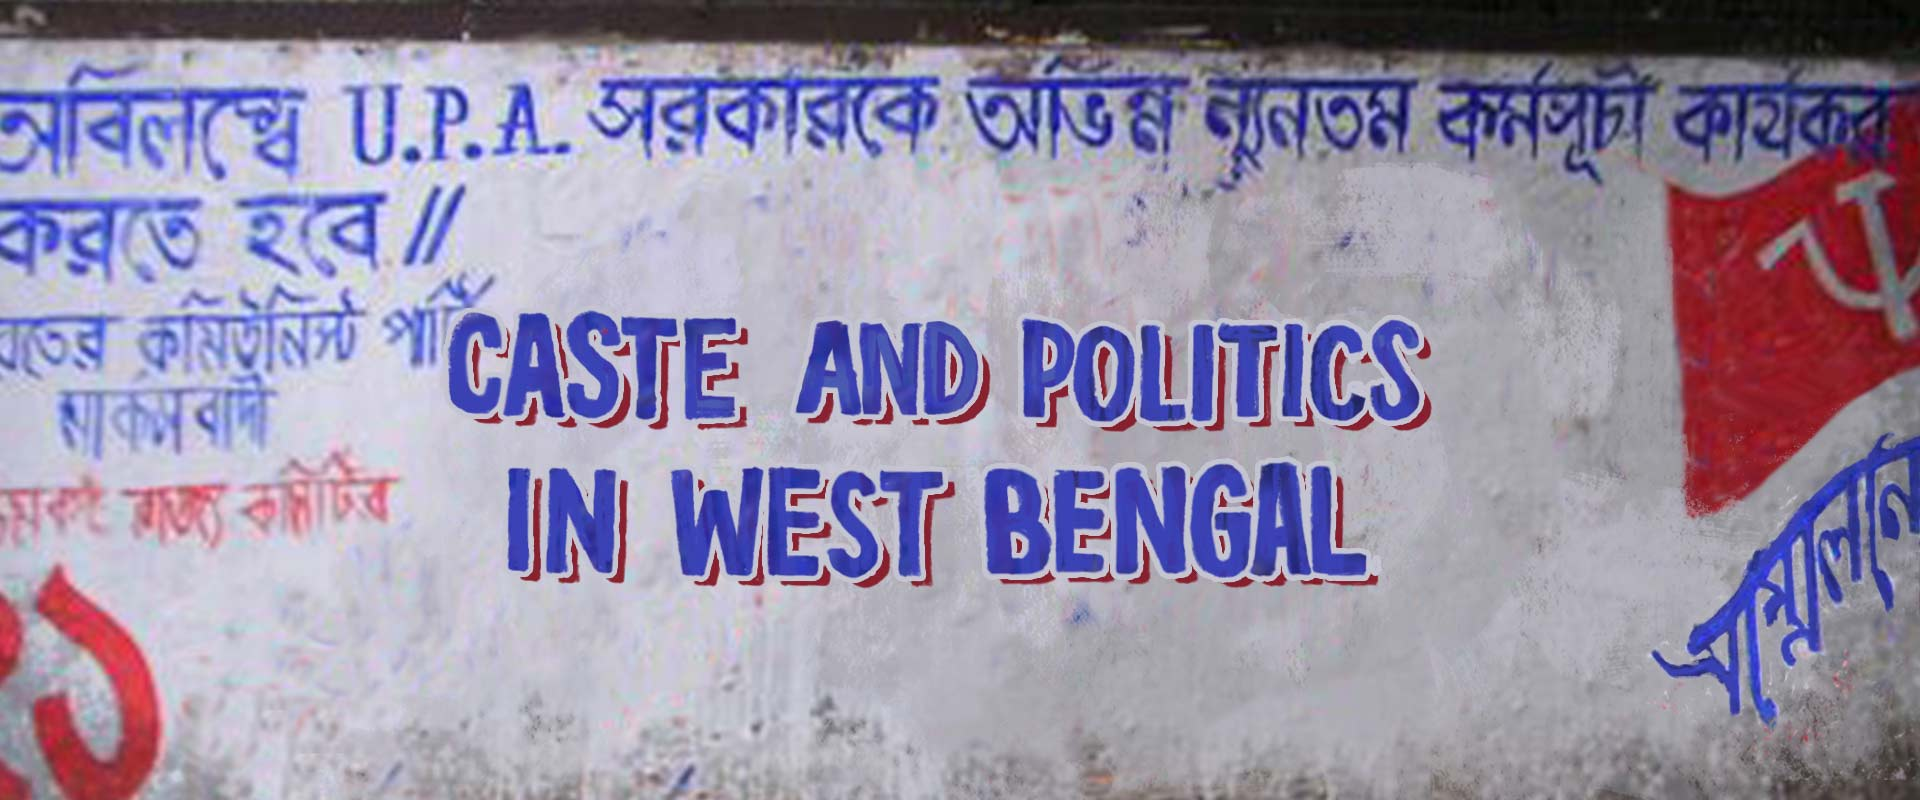 Is Caste Relevant in West Bengal Politics Now?   Economic and